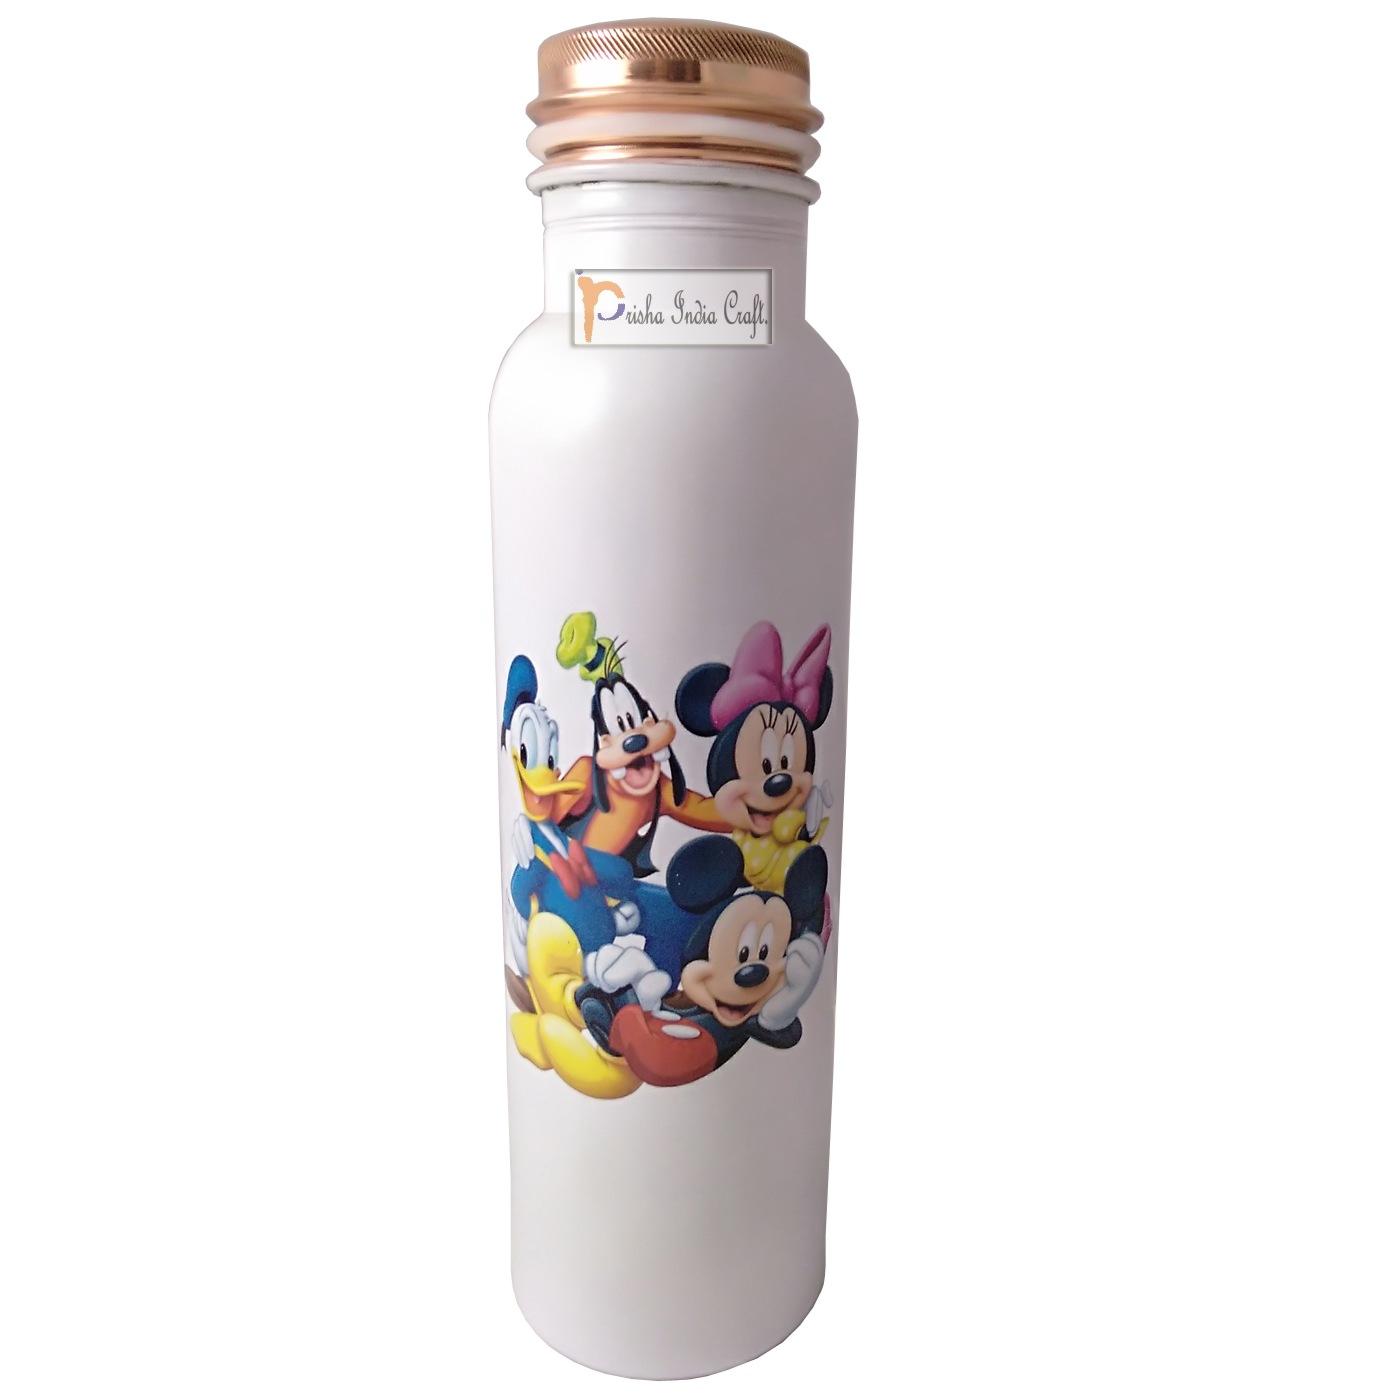 Digital Printed Pure Copper Water Bottle Kids School Water Bottle – Mickey Mouse and Donald Design, 1000 ML, 3 image